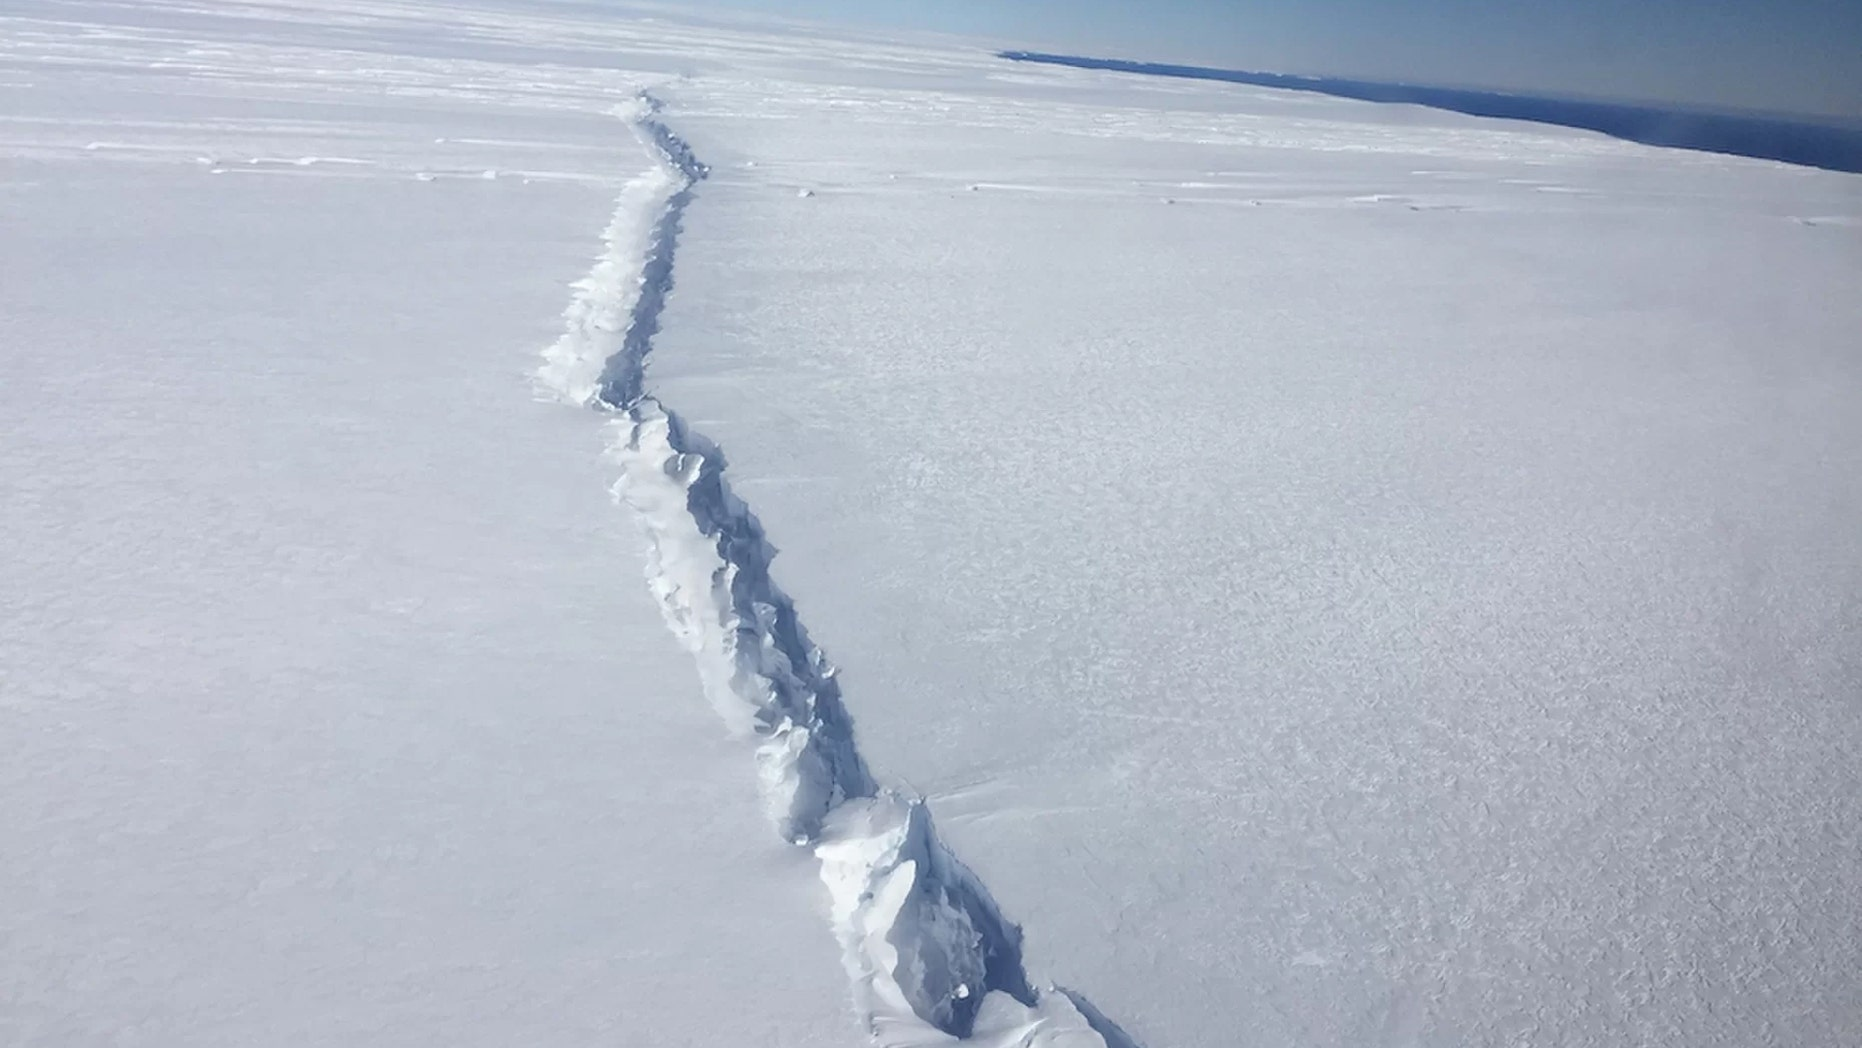 File photo: The A-68 iceberg separated from the Larsen C ice shelf in July 2017. Credit: Nathan Kurtz/NASA